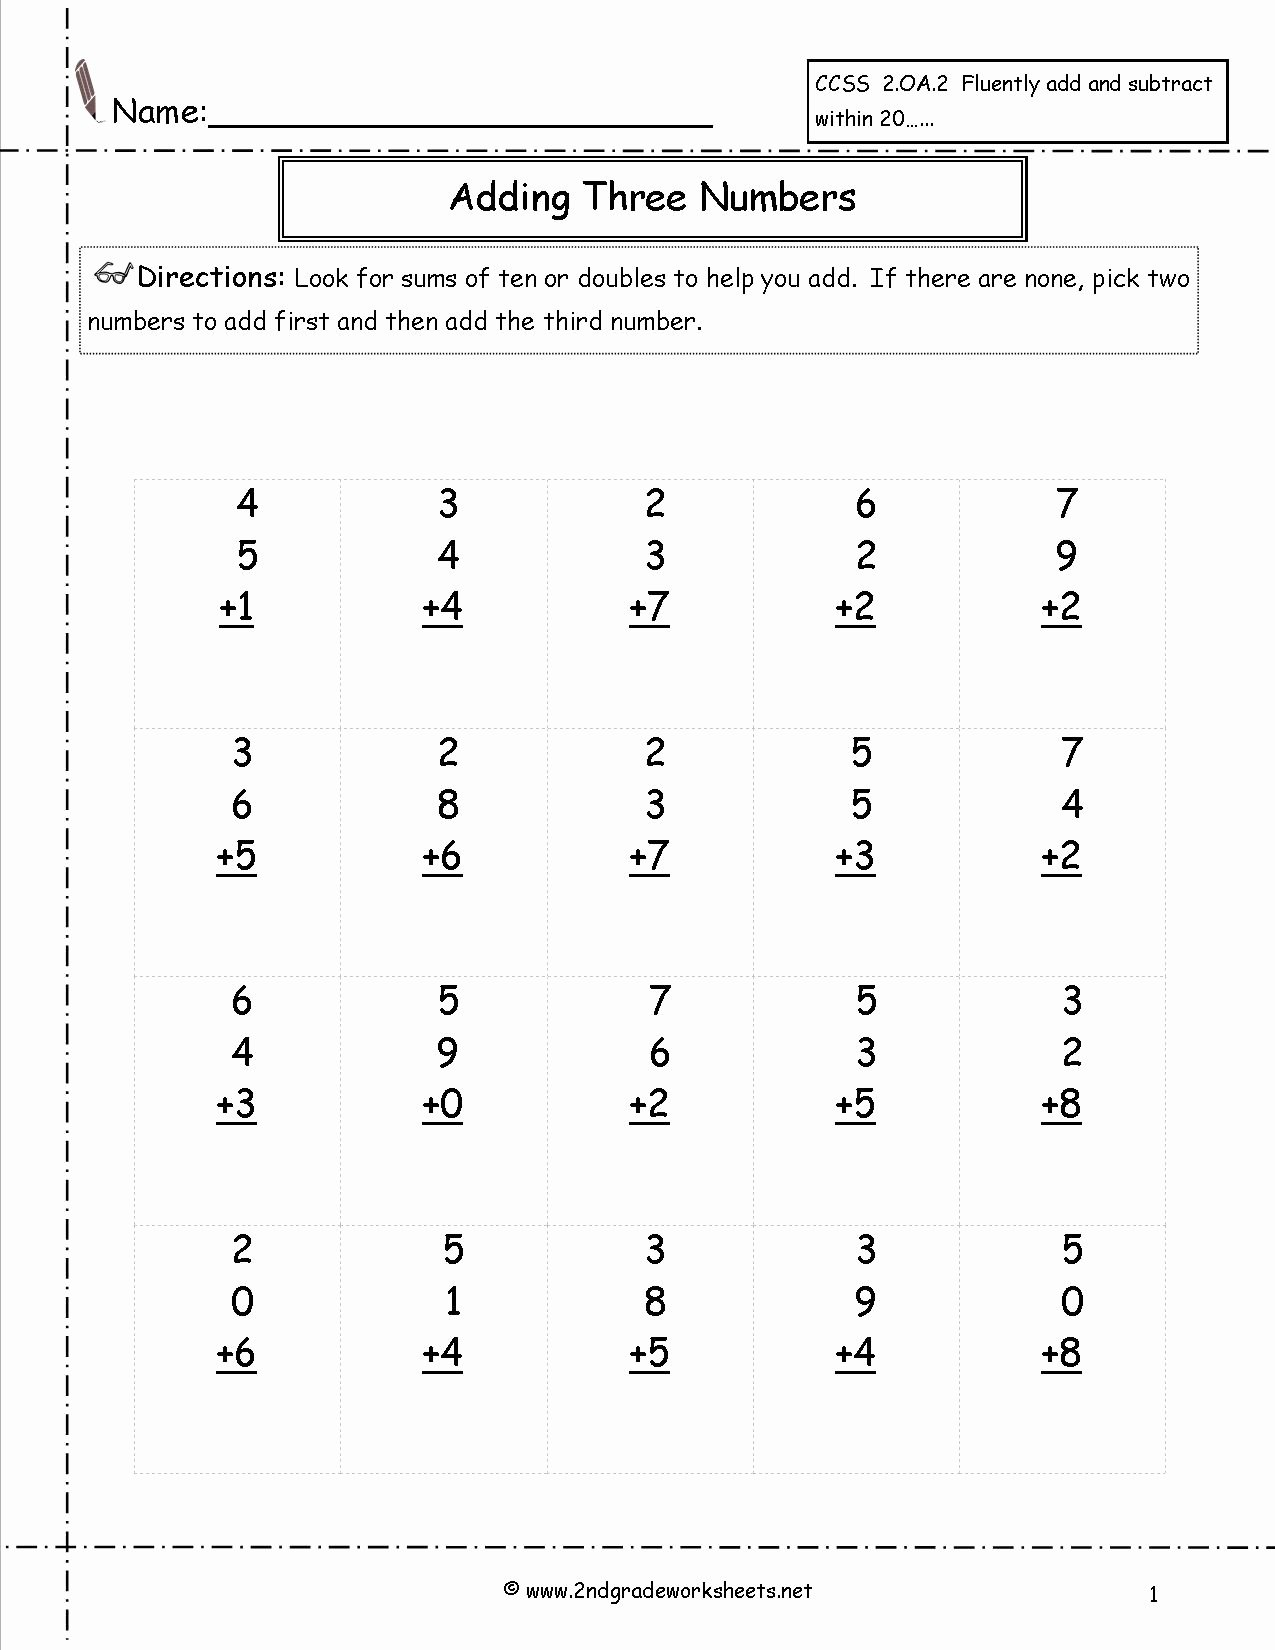 Istep Practice Worksheets 5th Grade Fresh Worksheet Staar Test 5th Grade Matheets Printable and 3rd